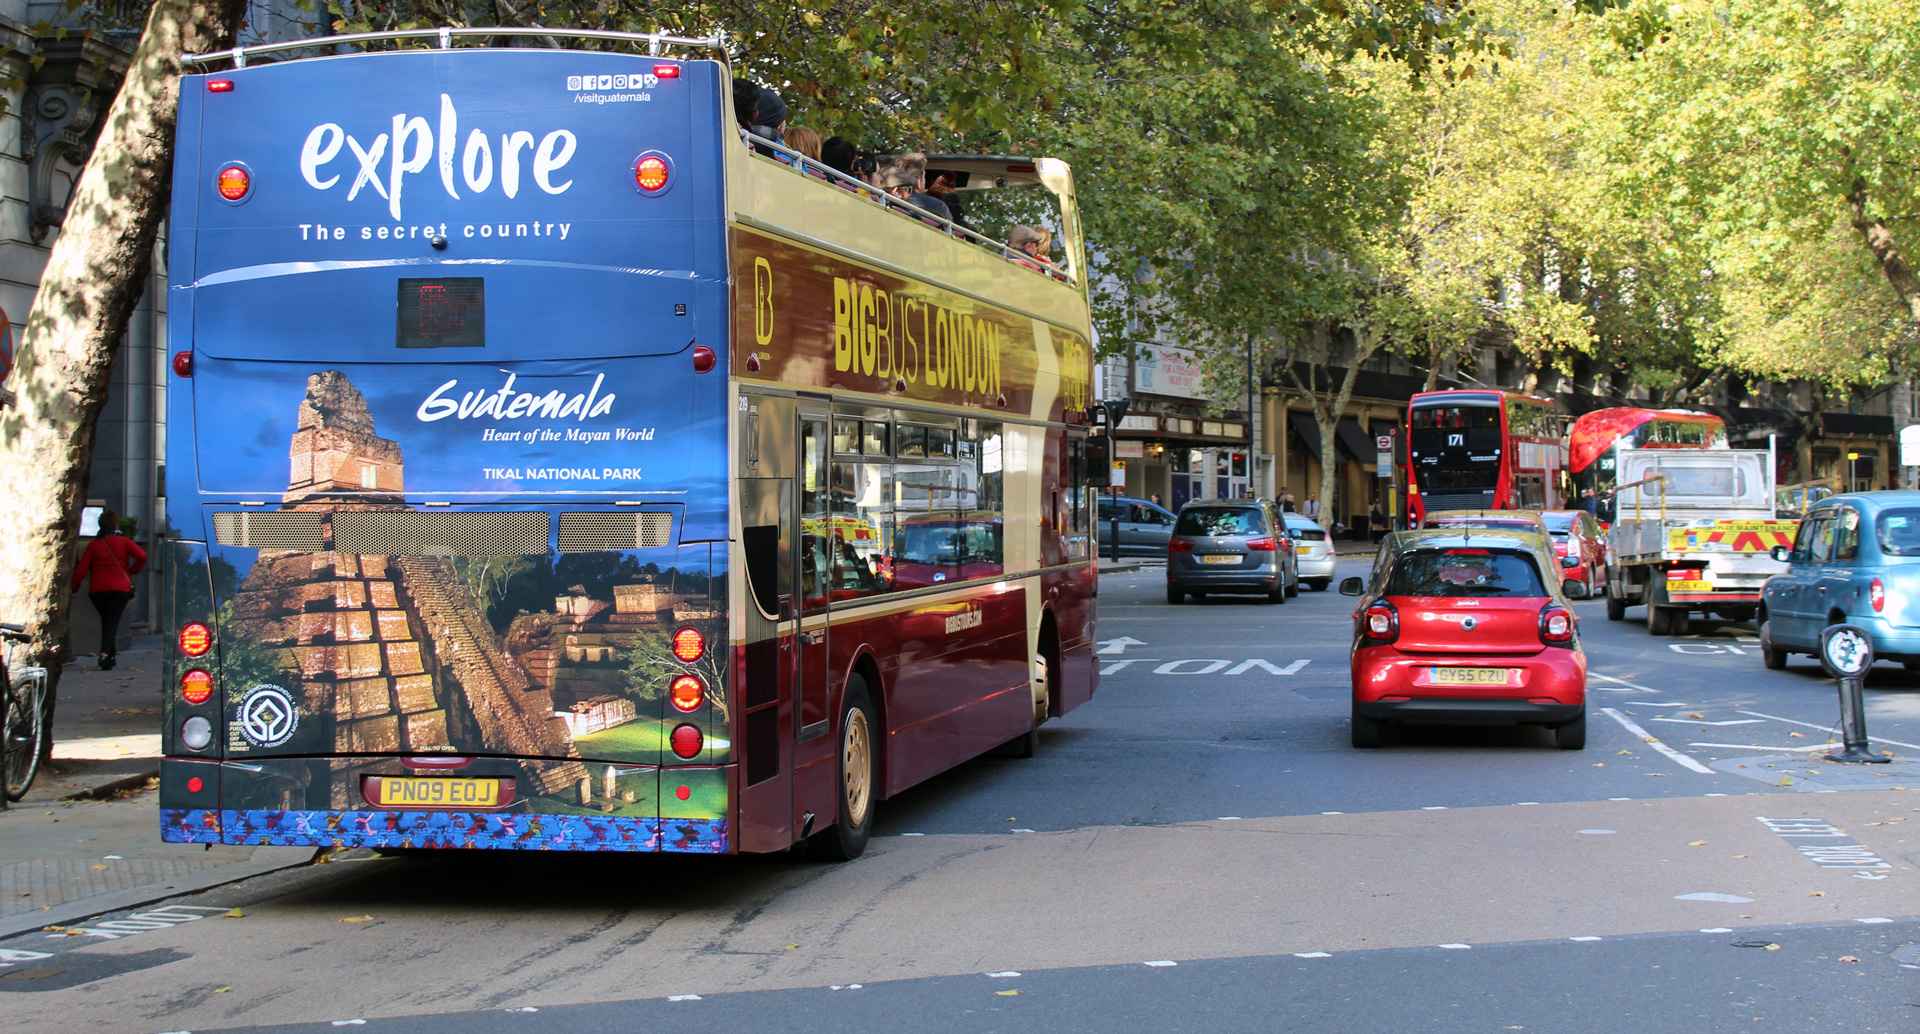 London sightseeing bus advertising